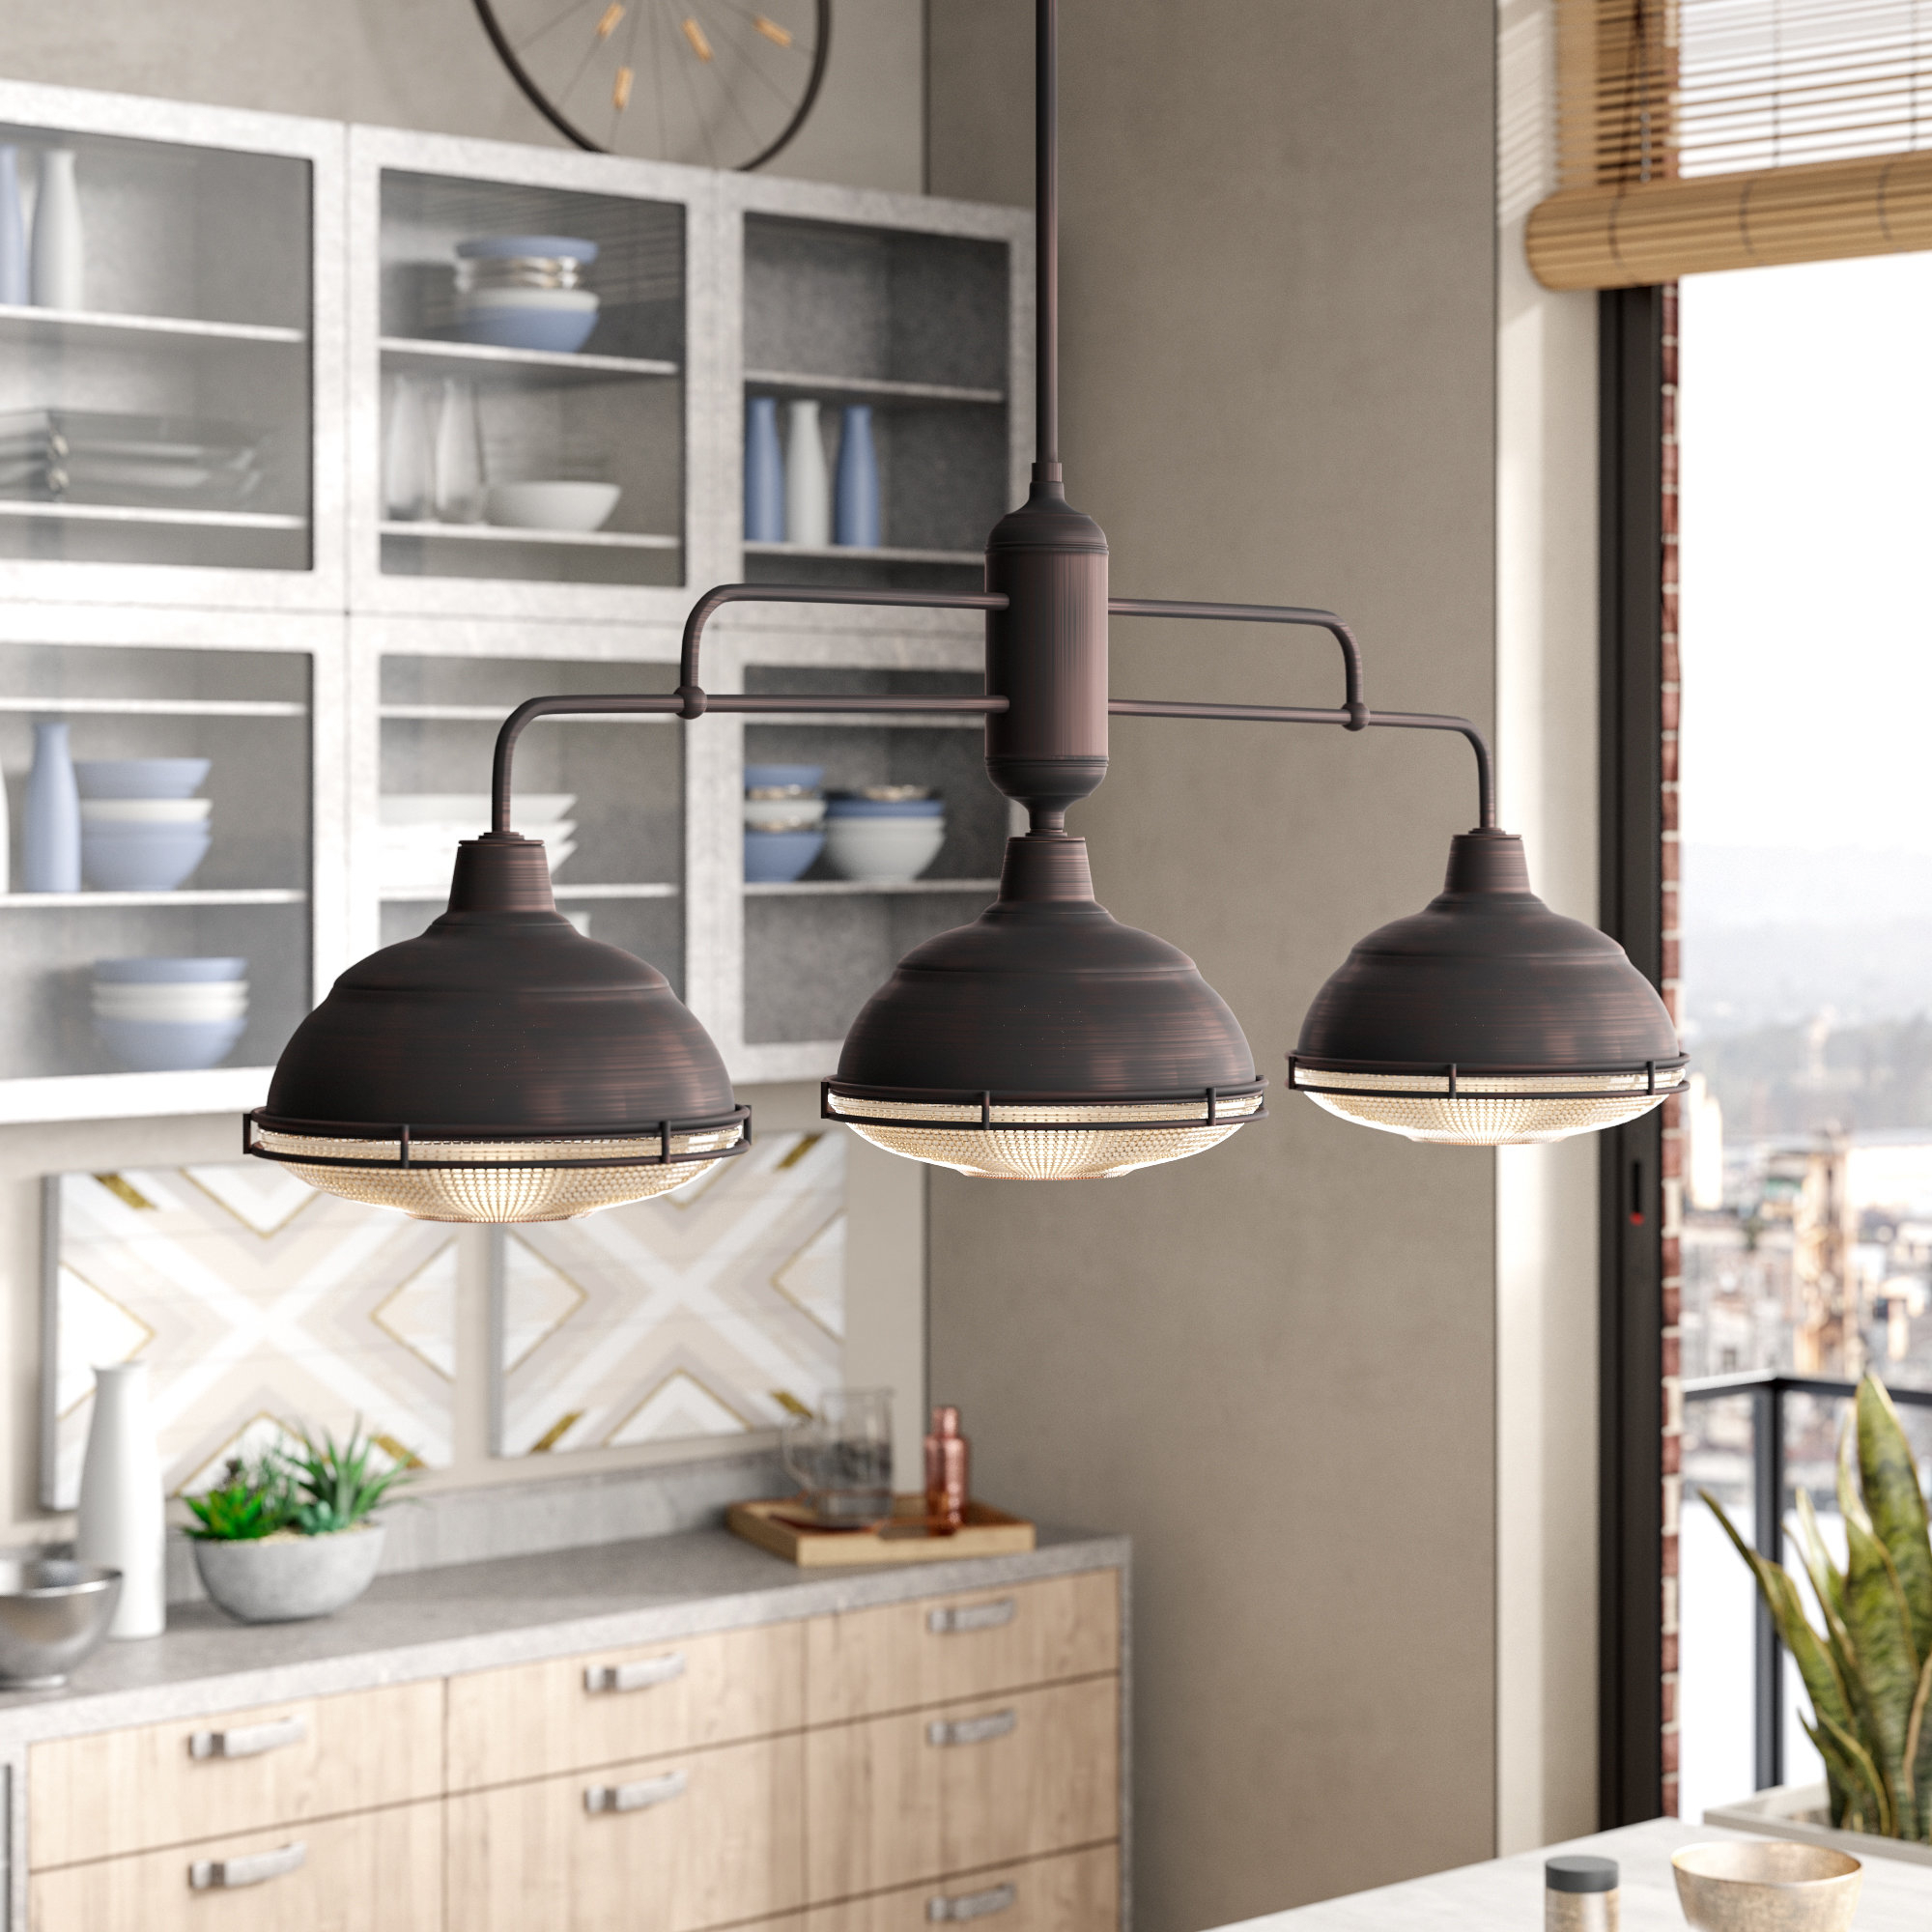 Bruges 3 Light Kitchen Island Dome Pendant Regarding Well Known Fredela 3 Light Kitchen Island Pendants (View 5 of 20)